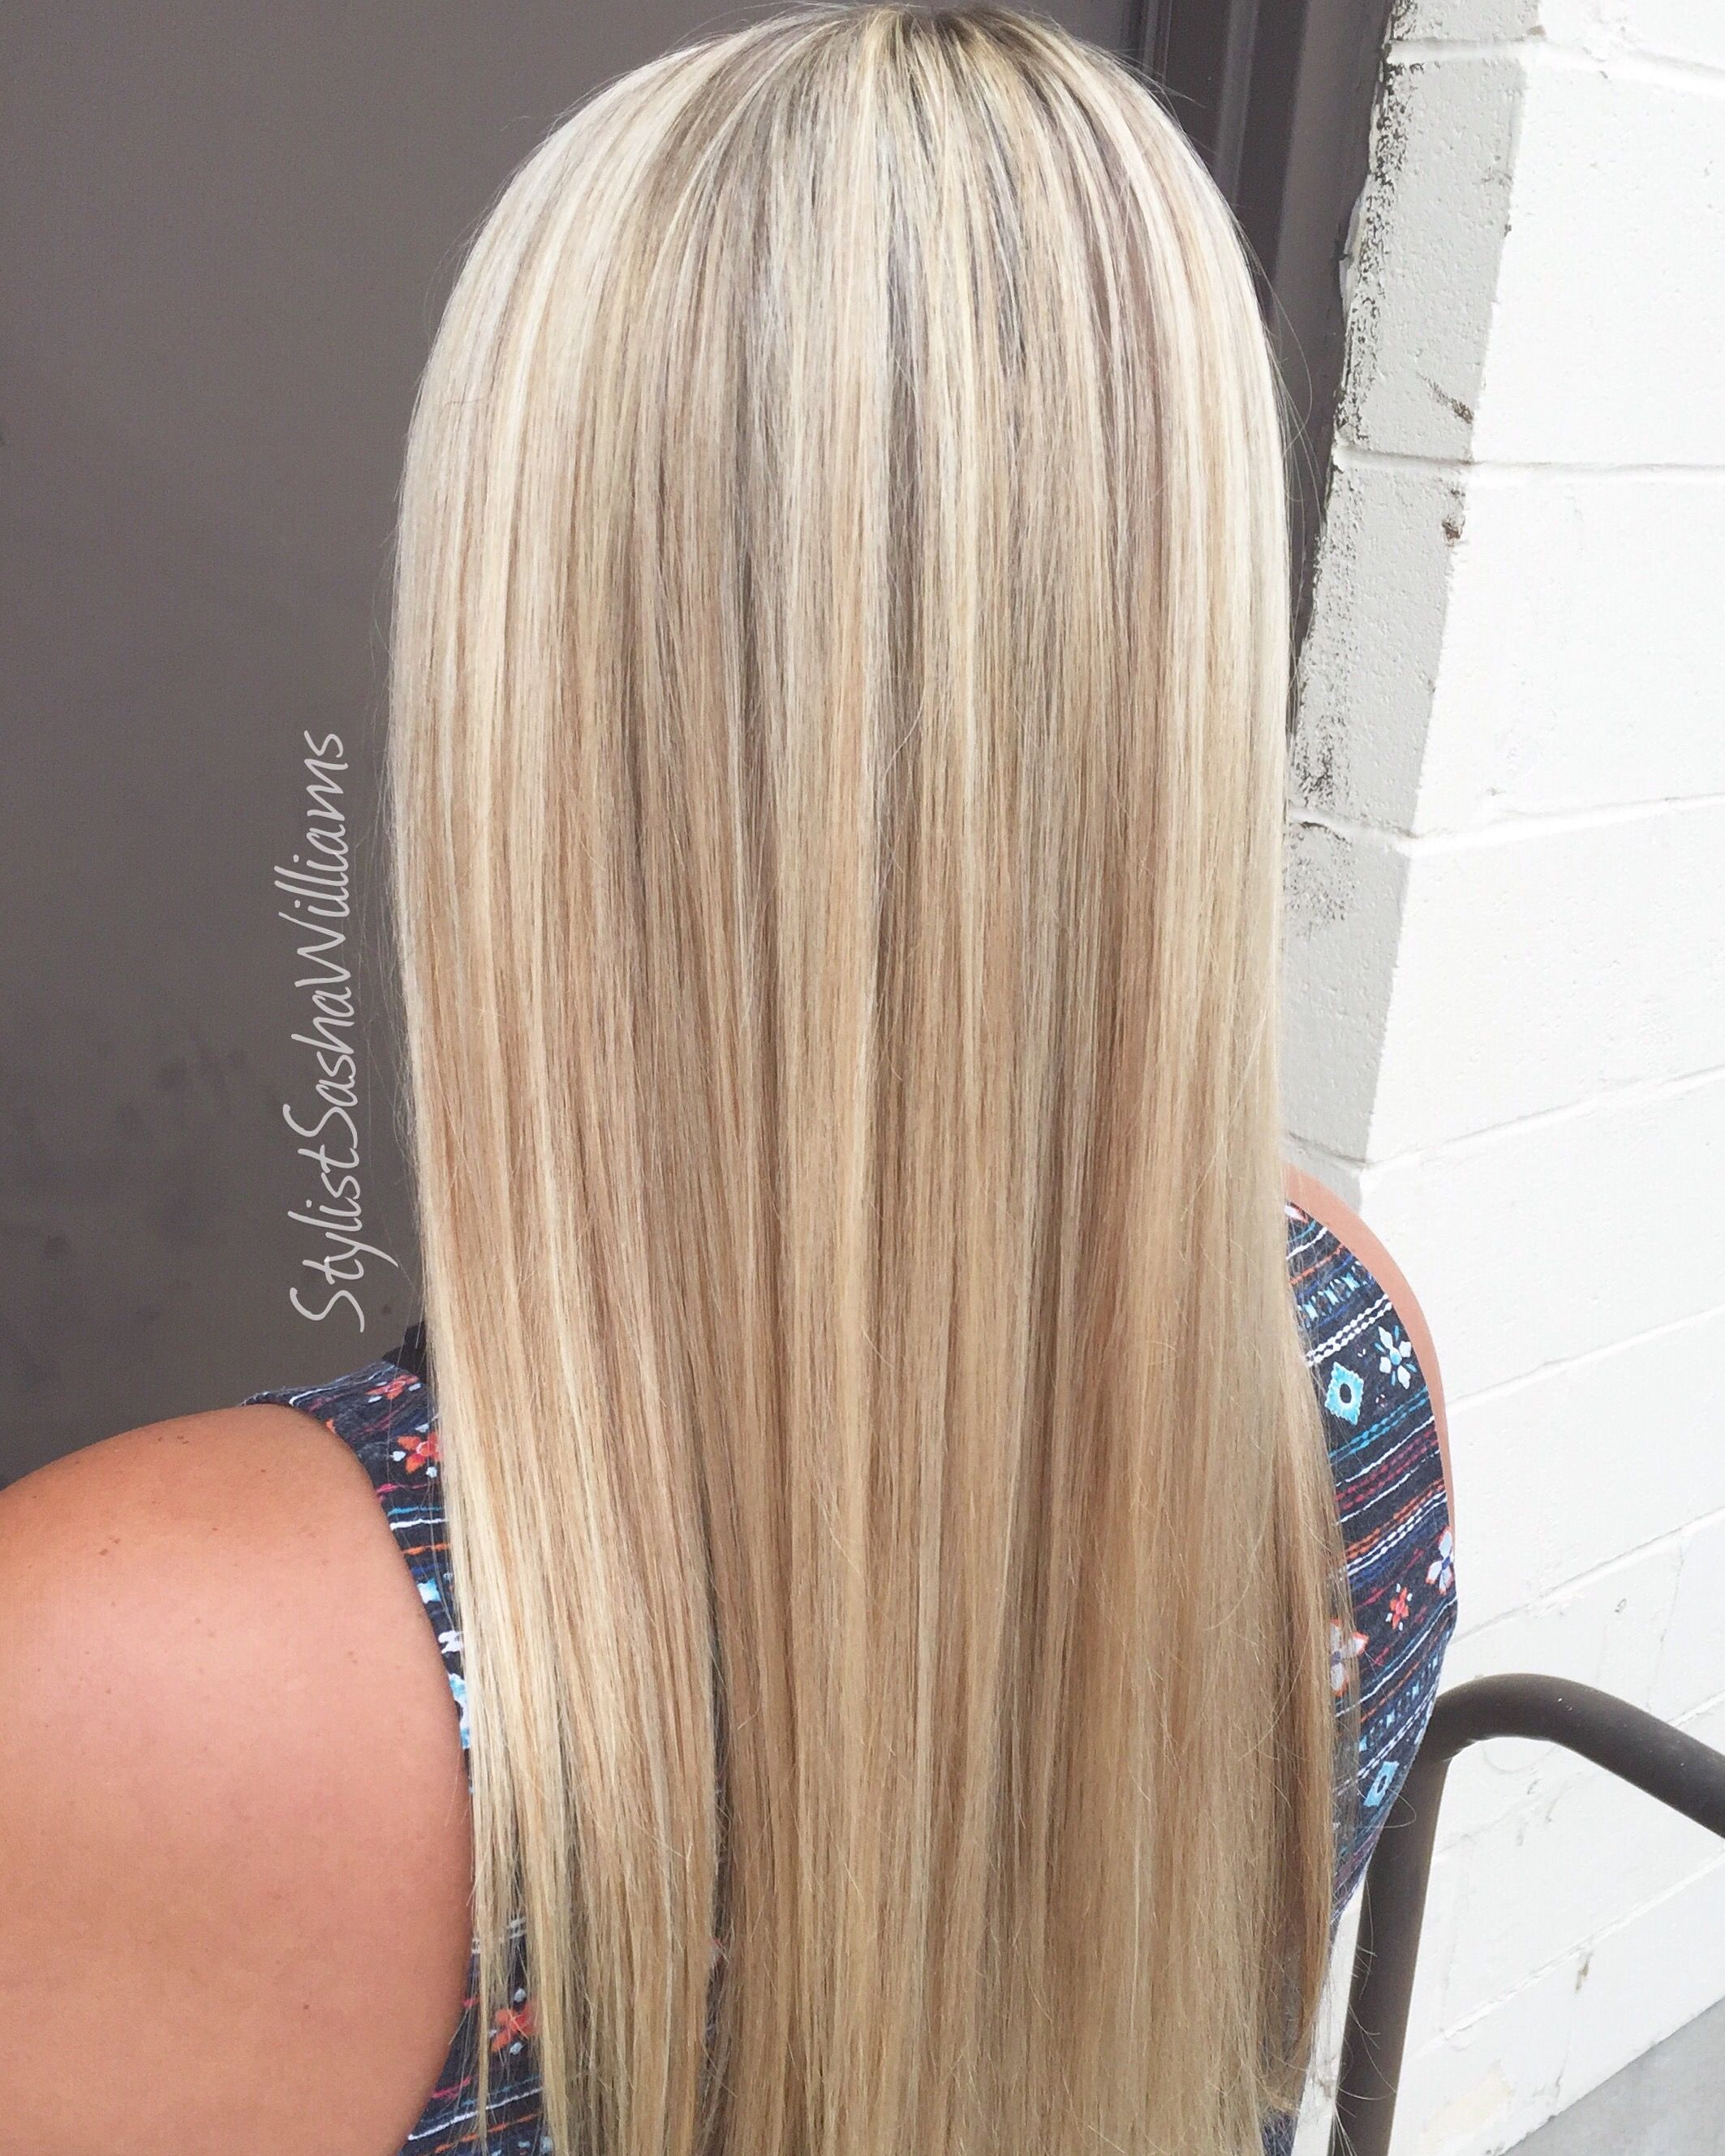 The Perfect Natural Blonde Foil Highlights And Toned